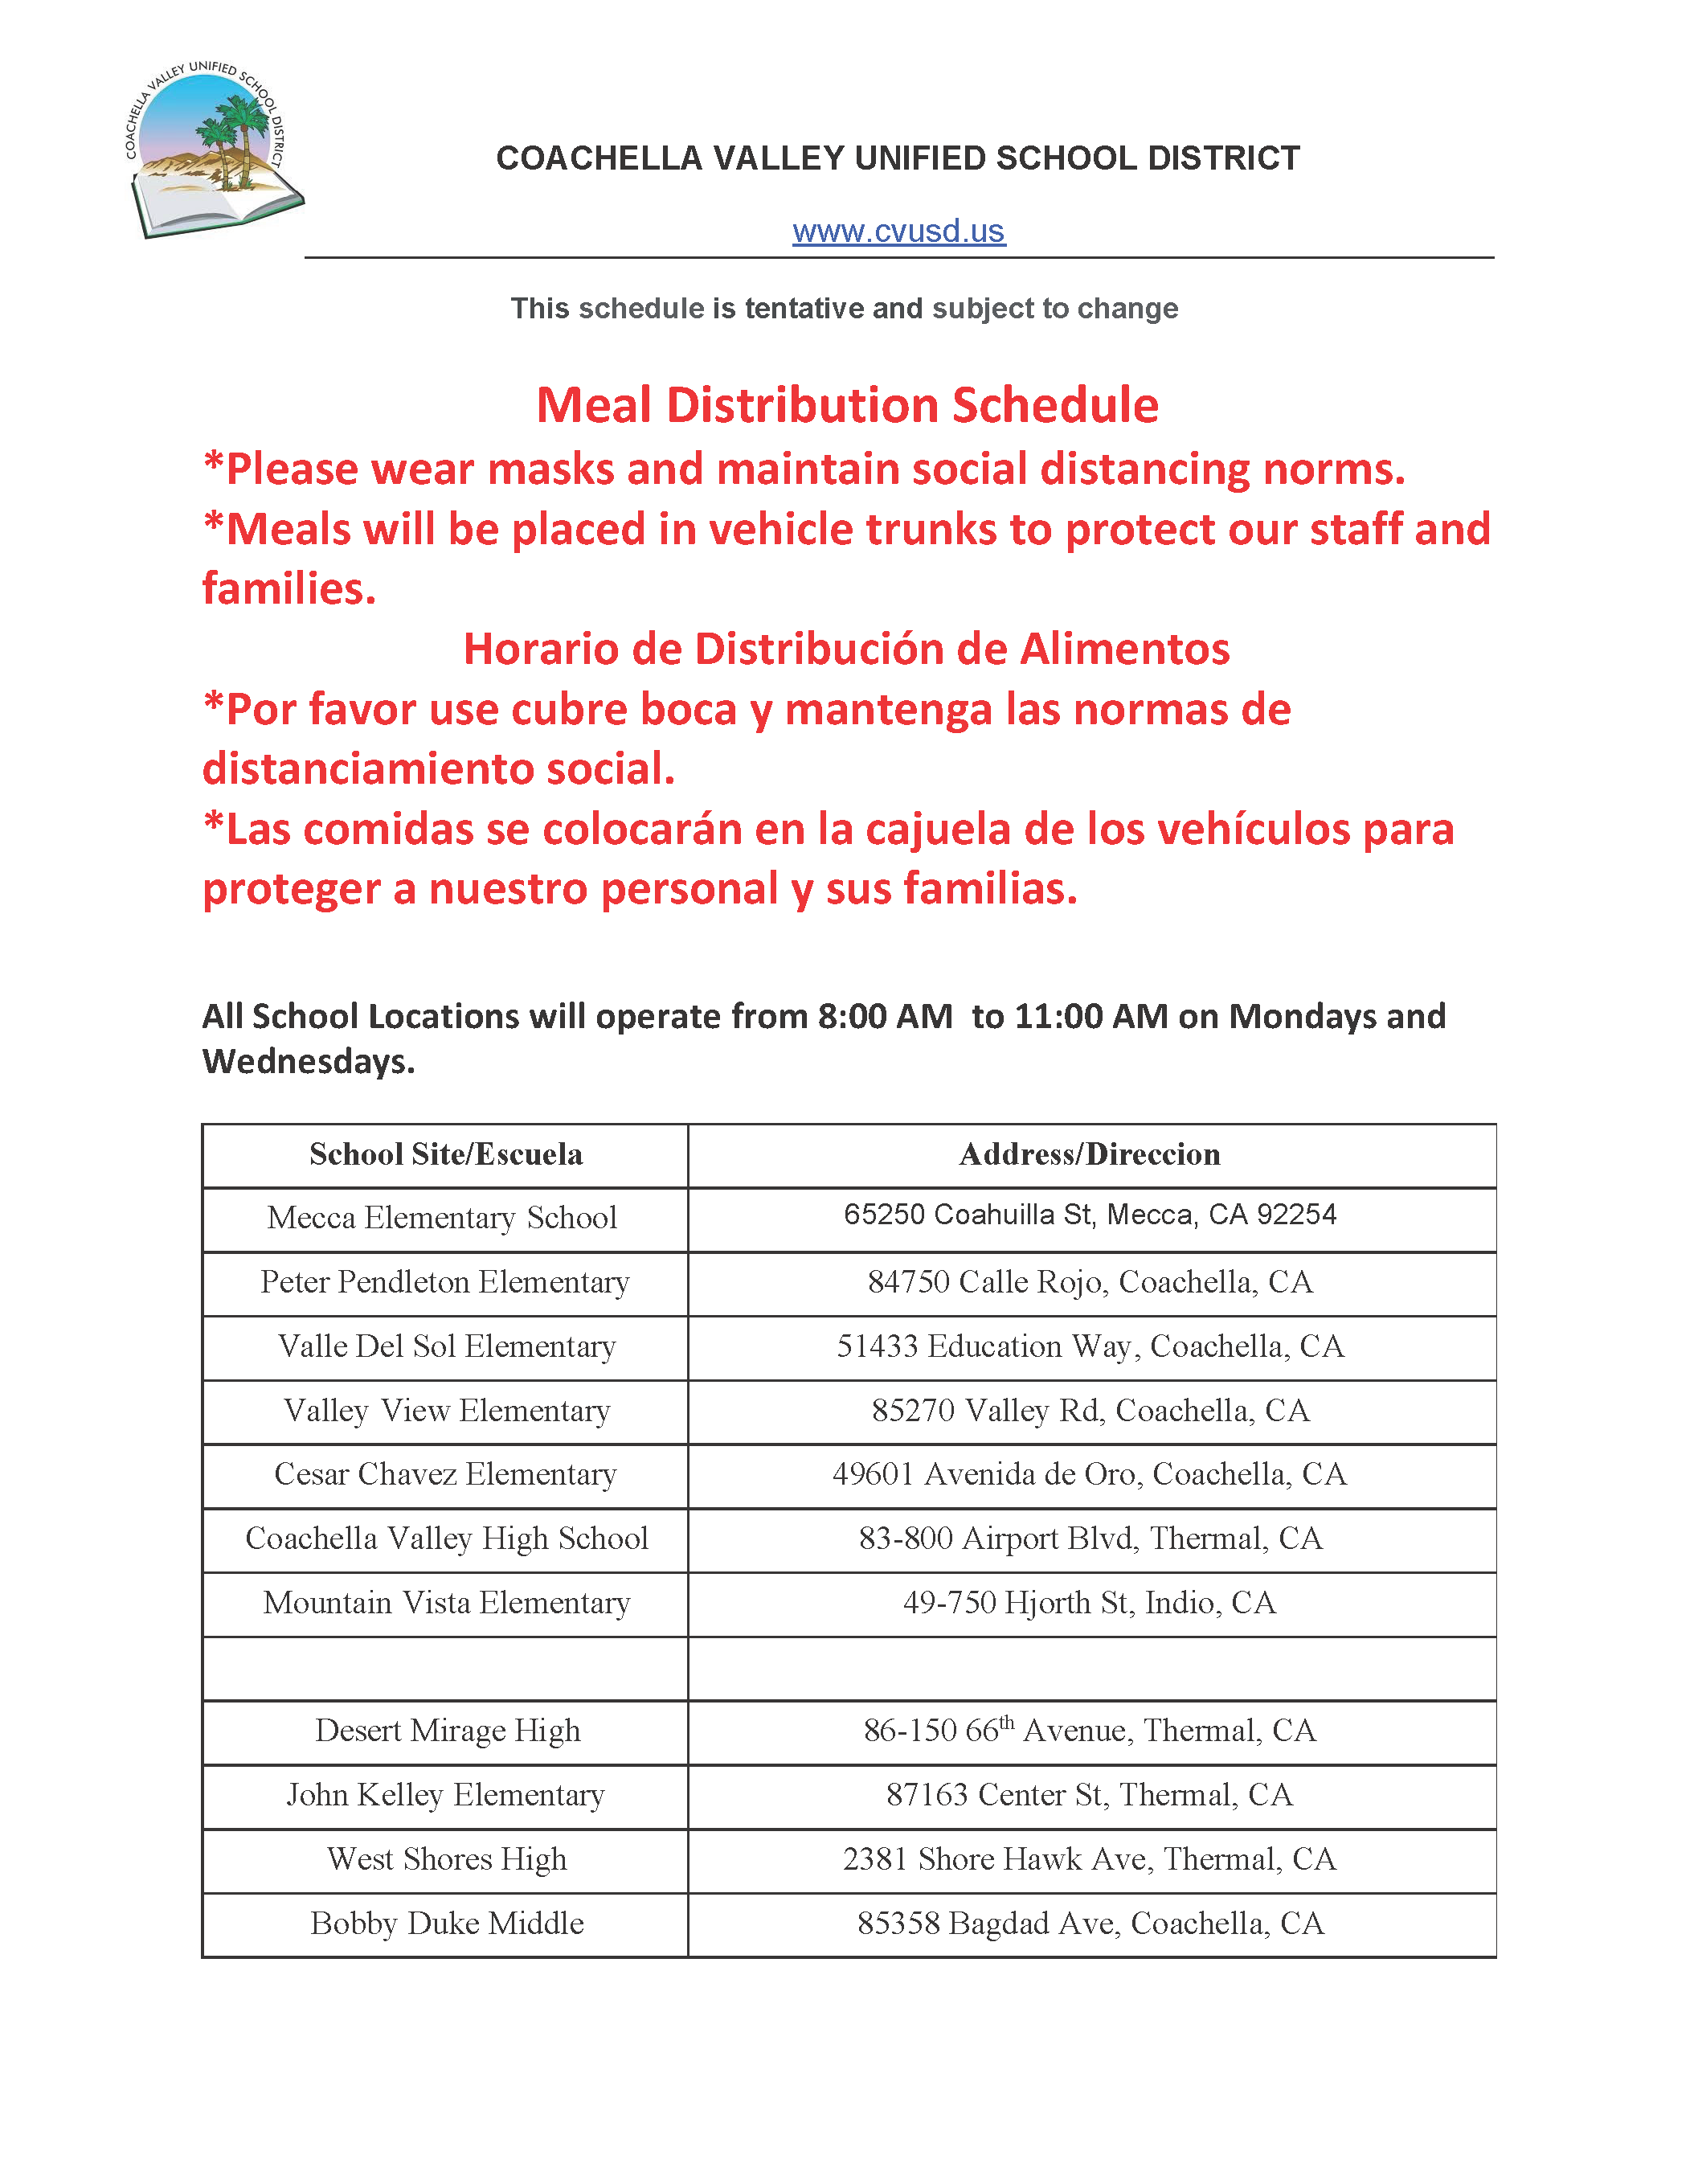 Meal Distribution Schedule June 6 2020